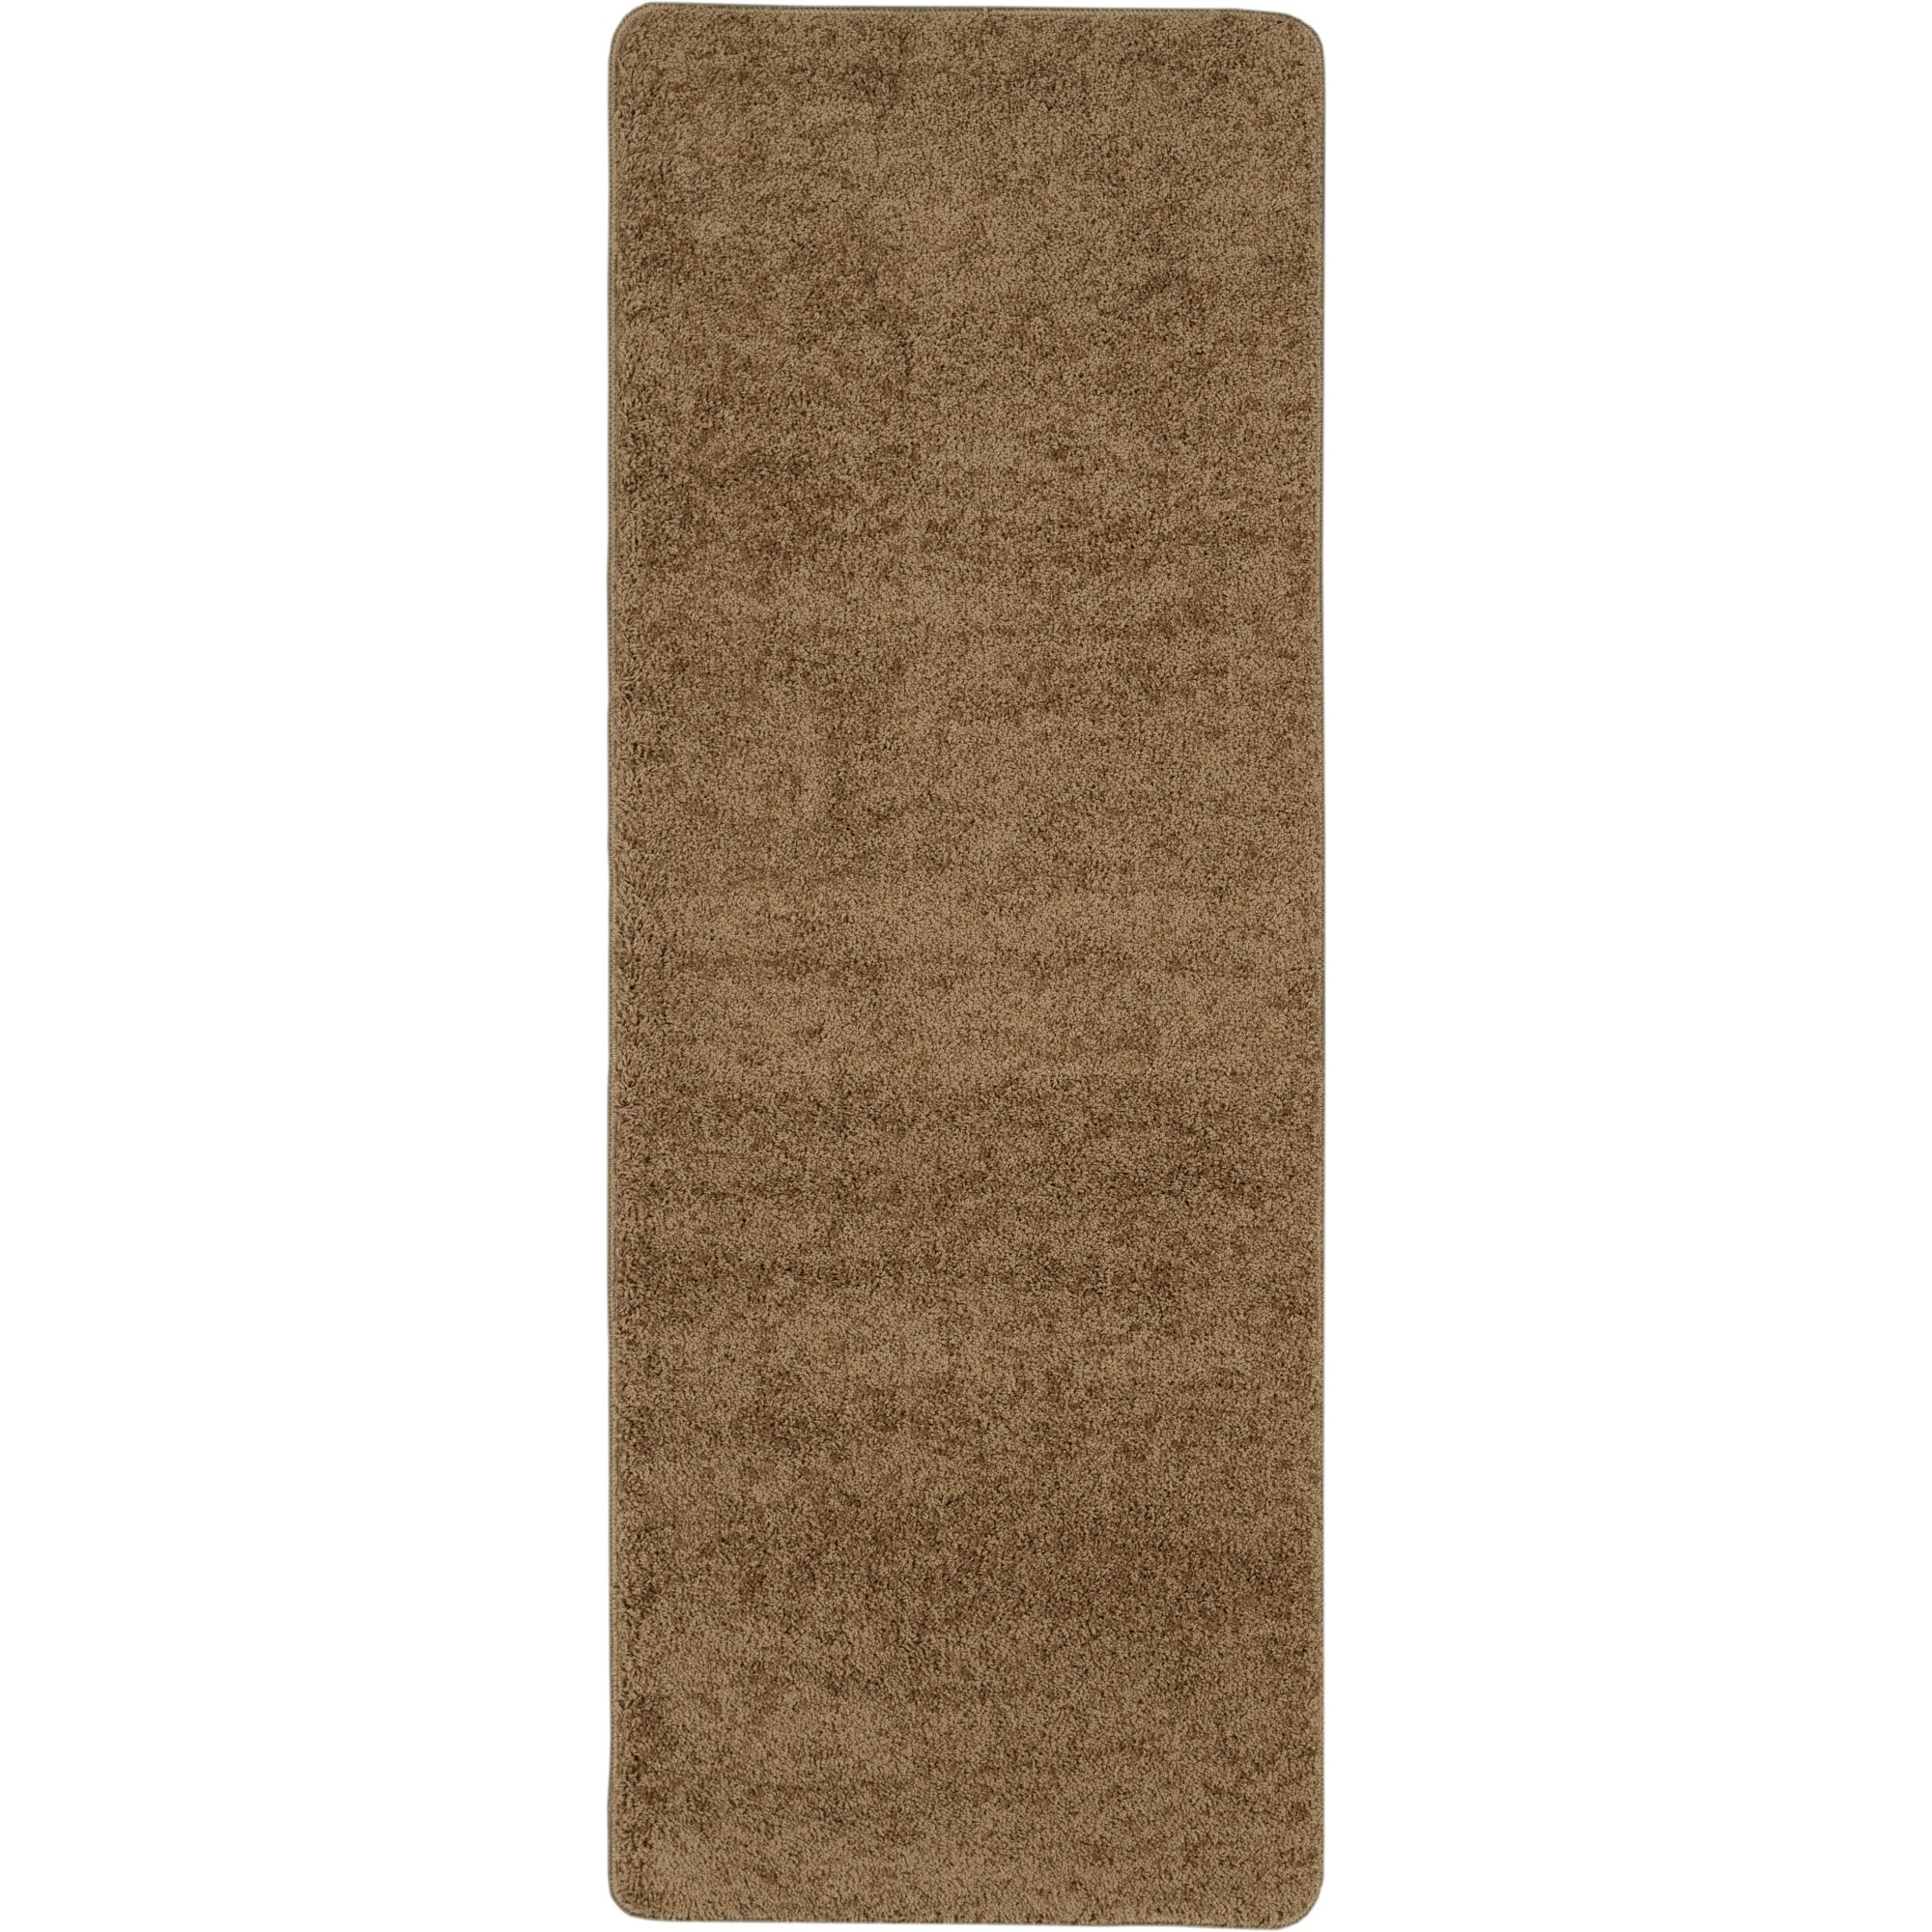 Sweethome Stores Luxury Collection Soft Non-Slip Shag Bath Rug ...